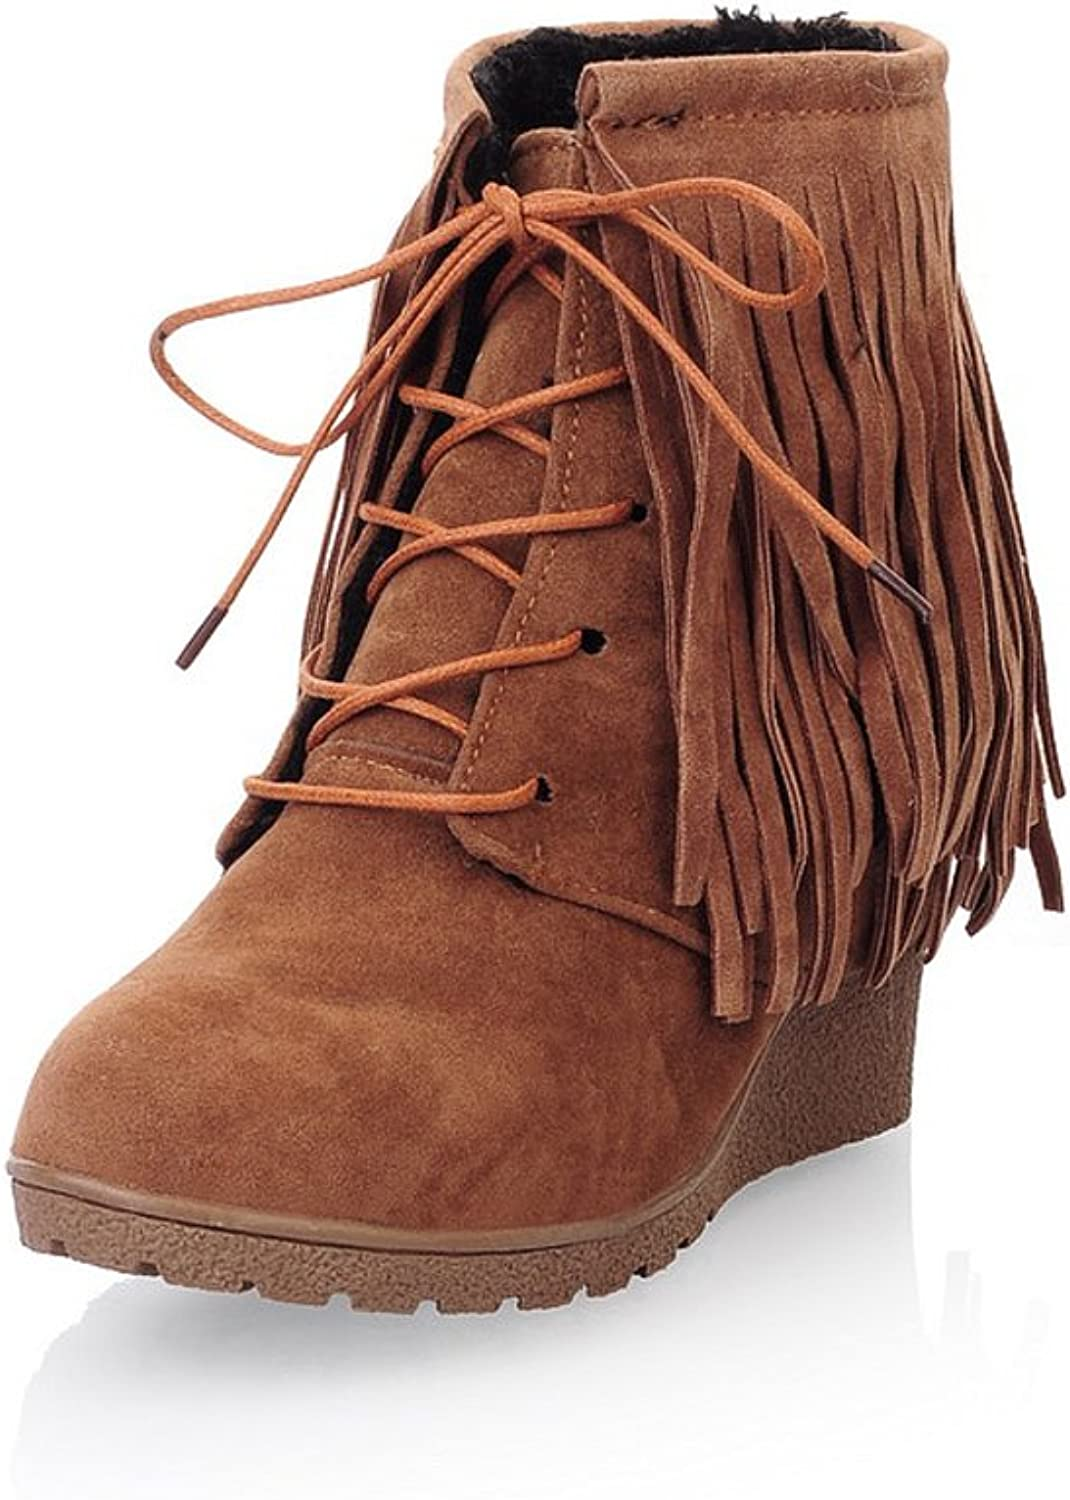 Lucksender Womens Closed Round Toe High Wedge Heels PU Frosted Lace Up Solid Boots with Tassels